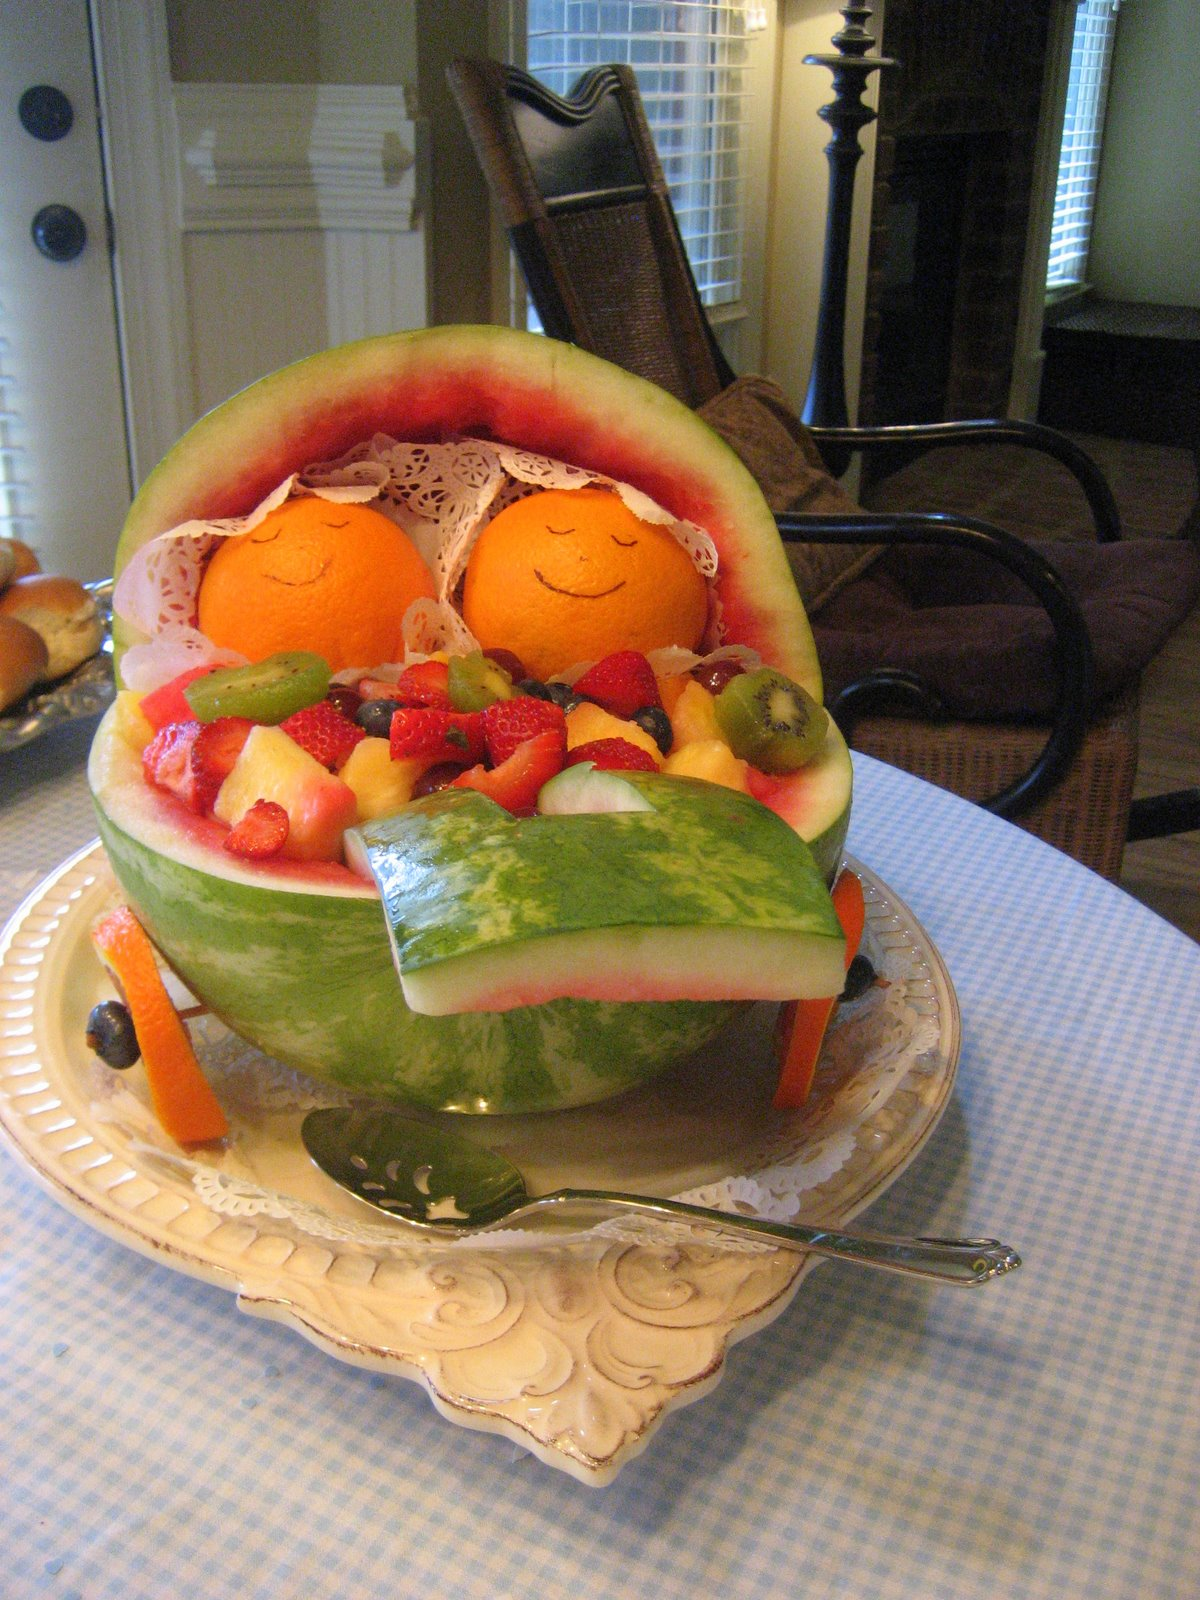 Waters Party Of Five: Twin Oranges In A Watermelon Baby